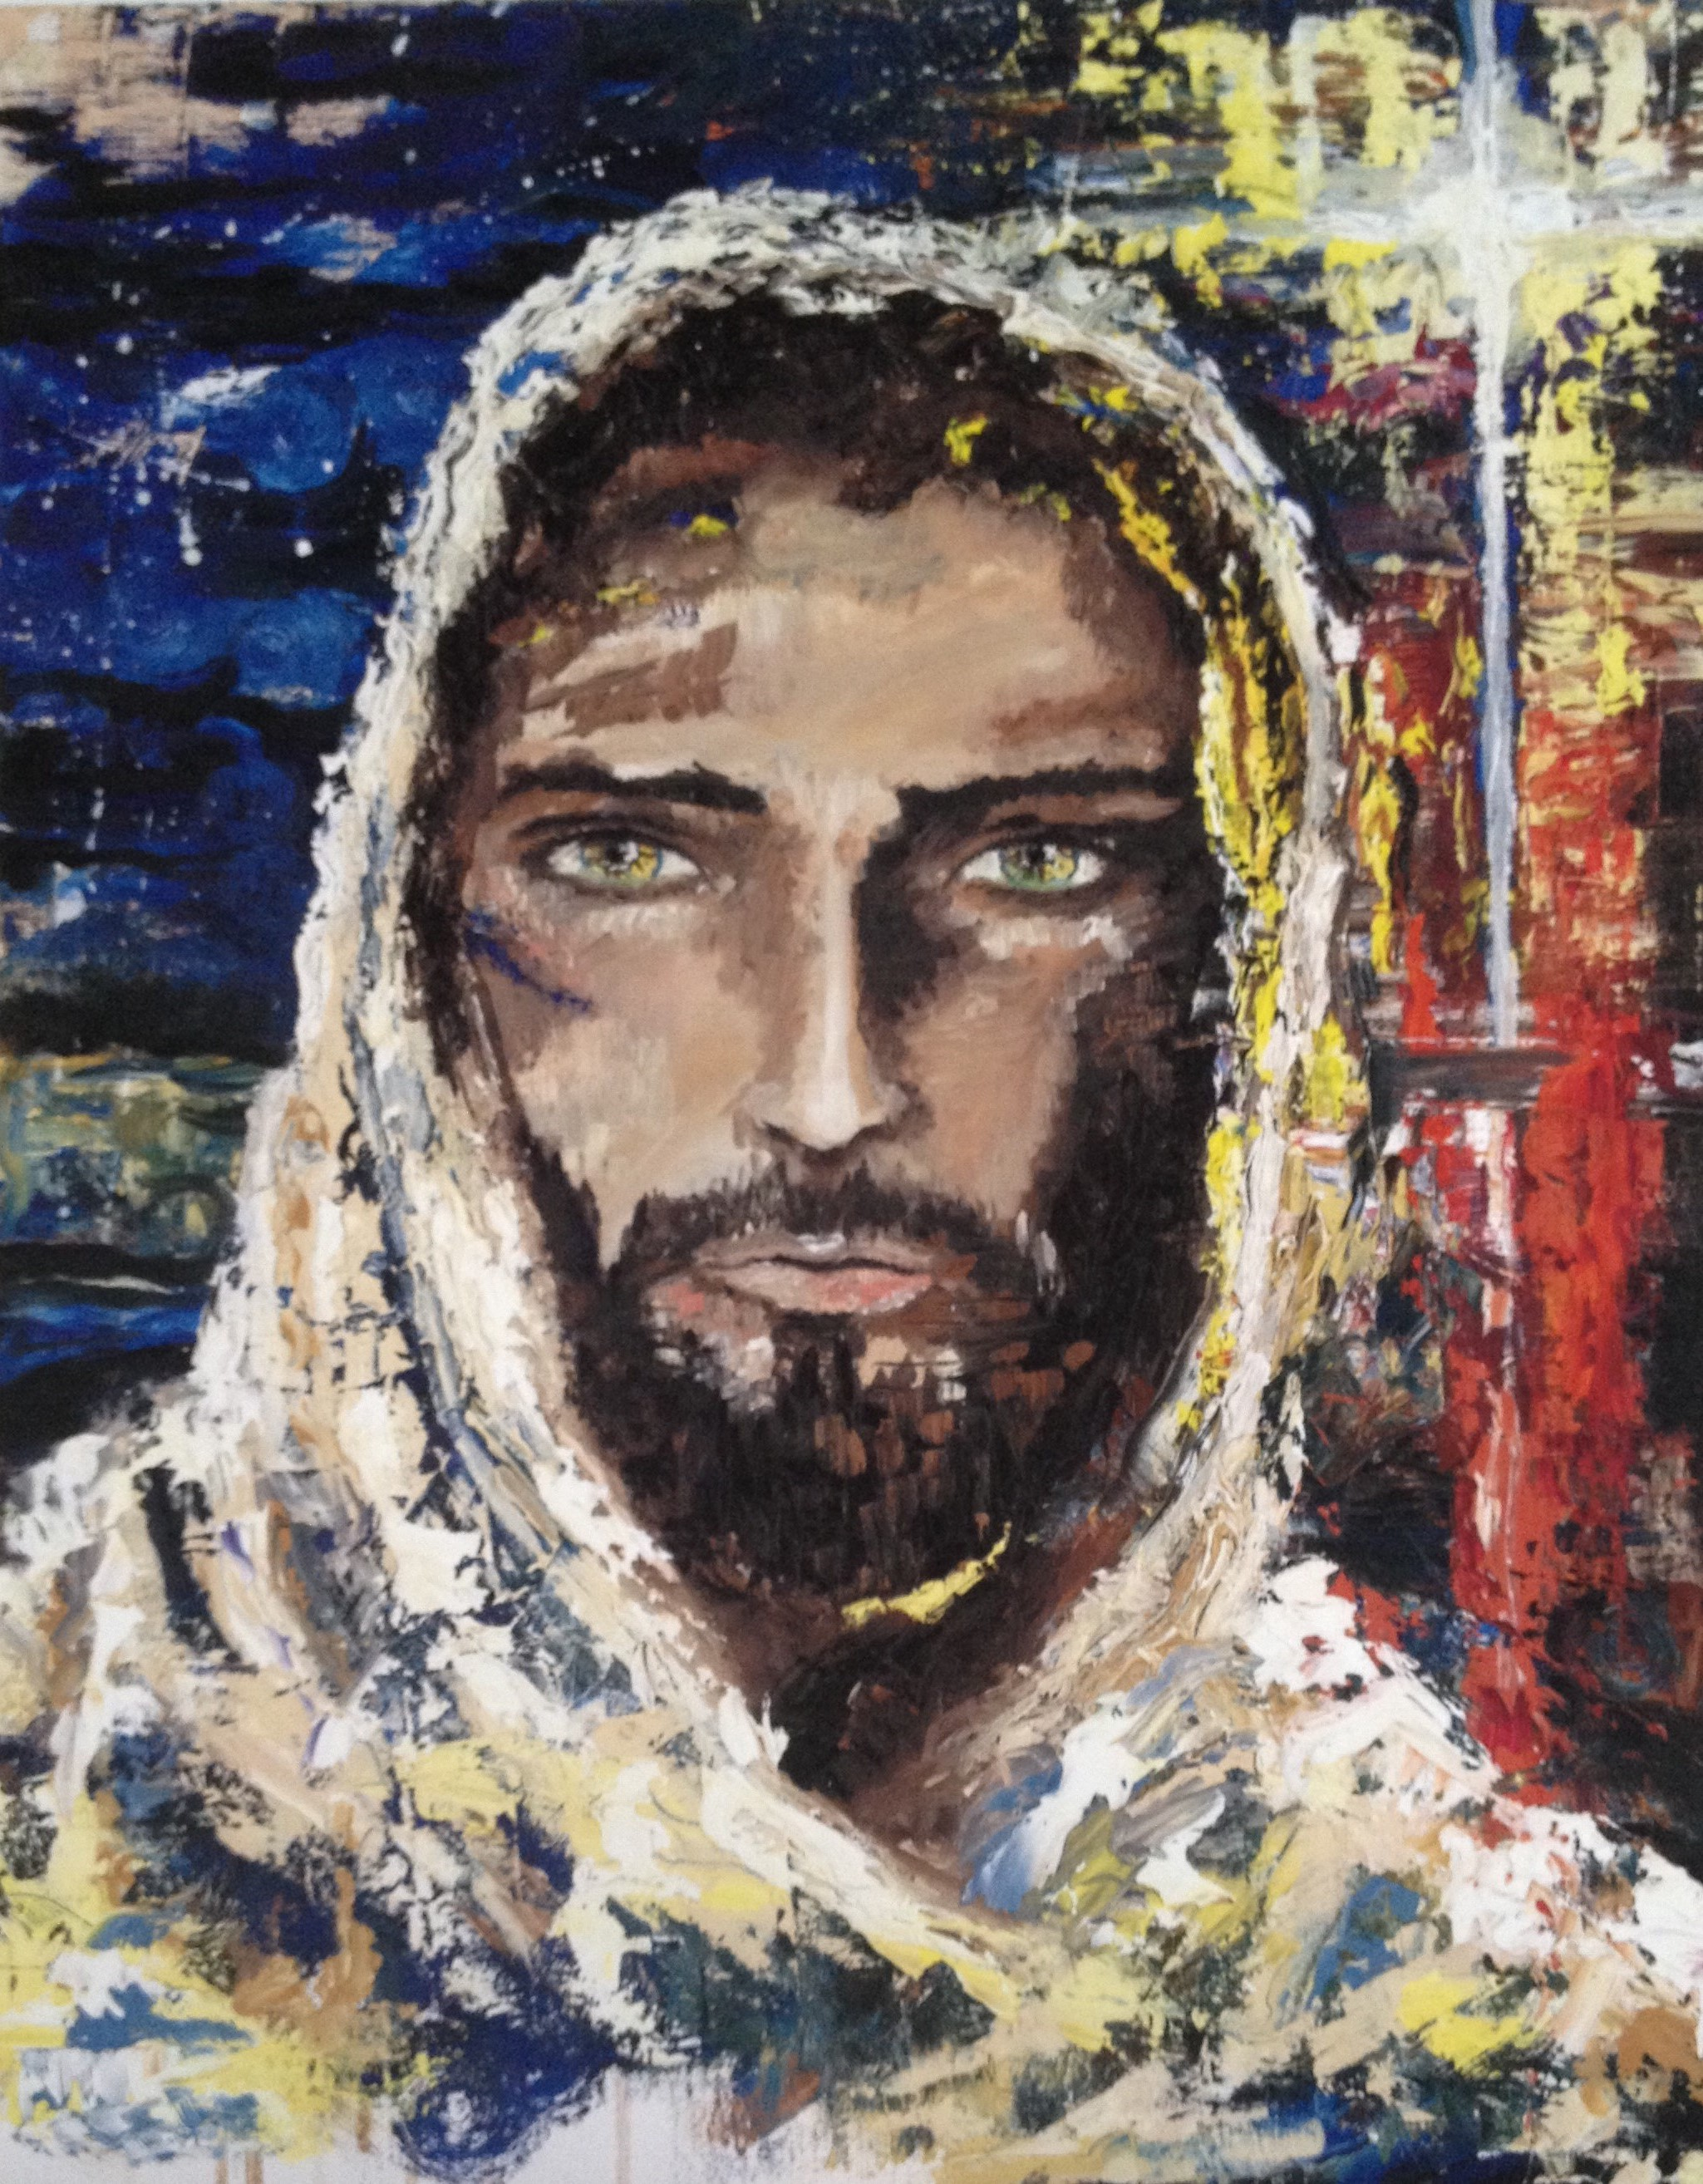 """Jesus, the Bright & Morning Star""   20 x 16 inch, oil on canvas   SOLD"